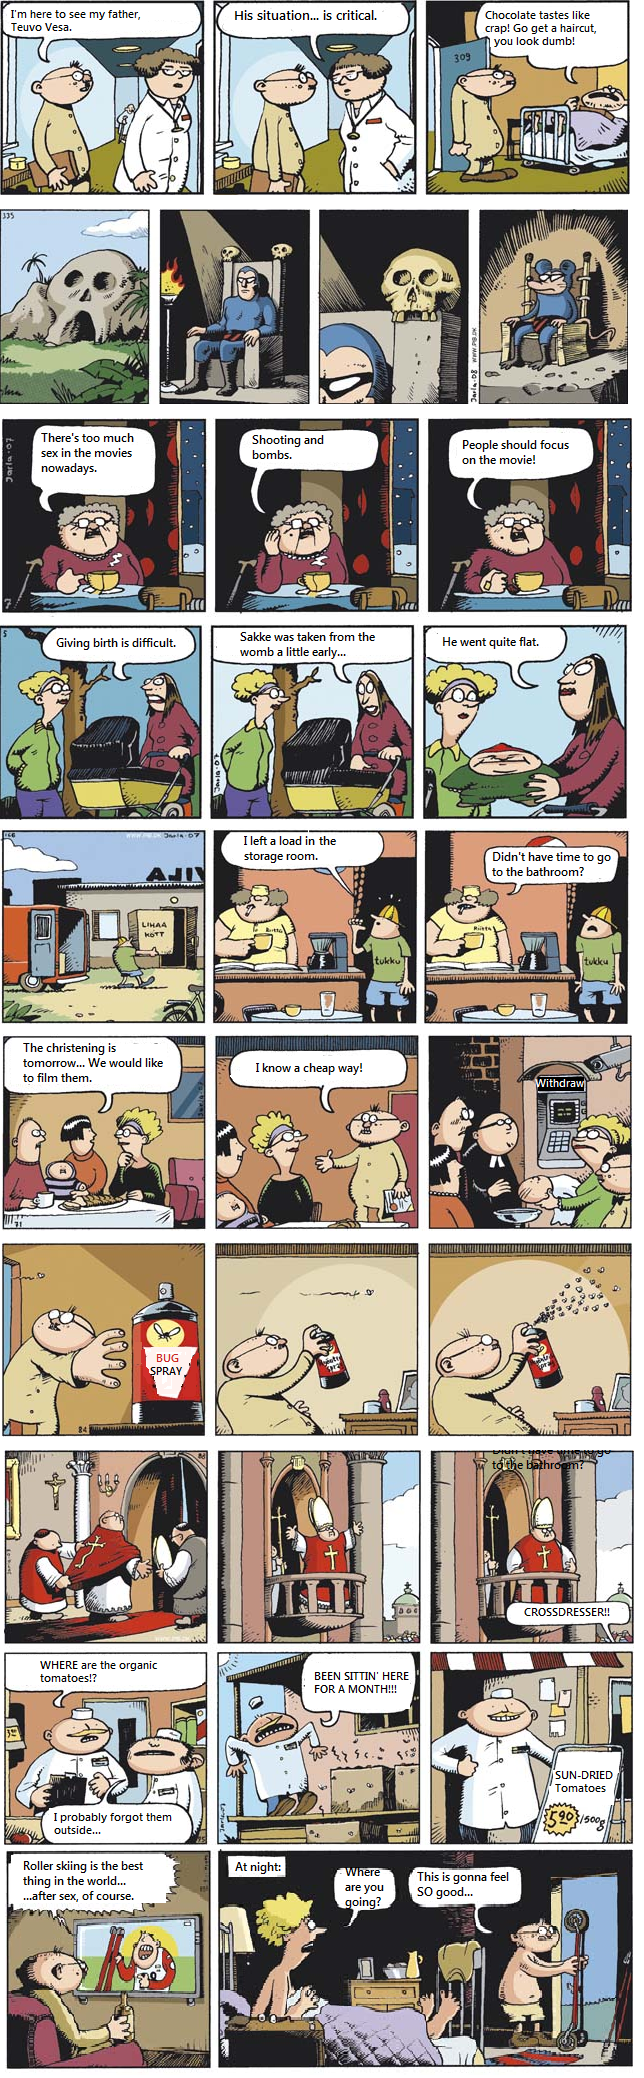 Fingerpori comp 2. Since my last Fingerpori comp was kinda liked, I decided to translate a pile of these myself. Look at my first post for info about this crap: